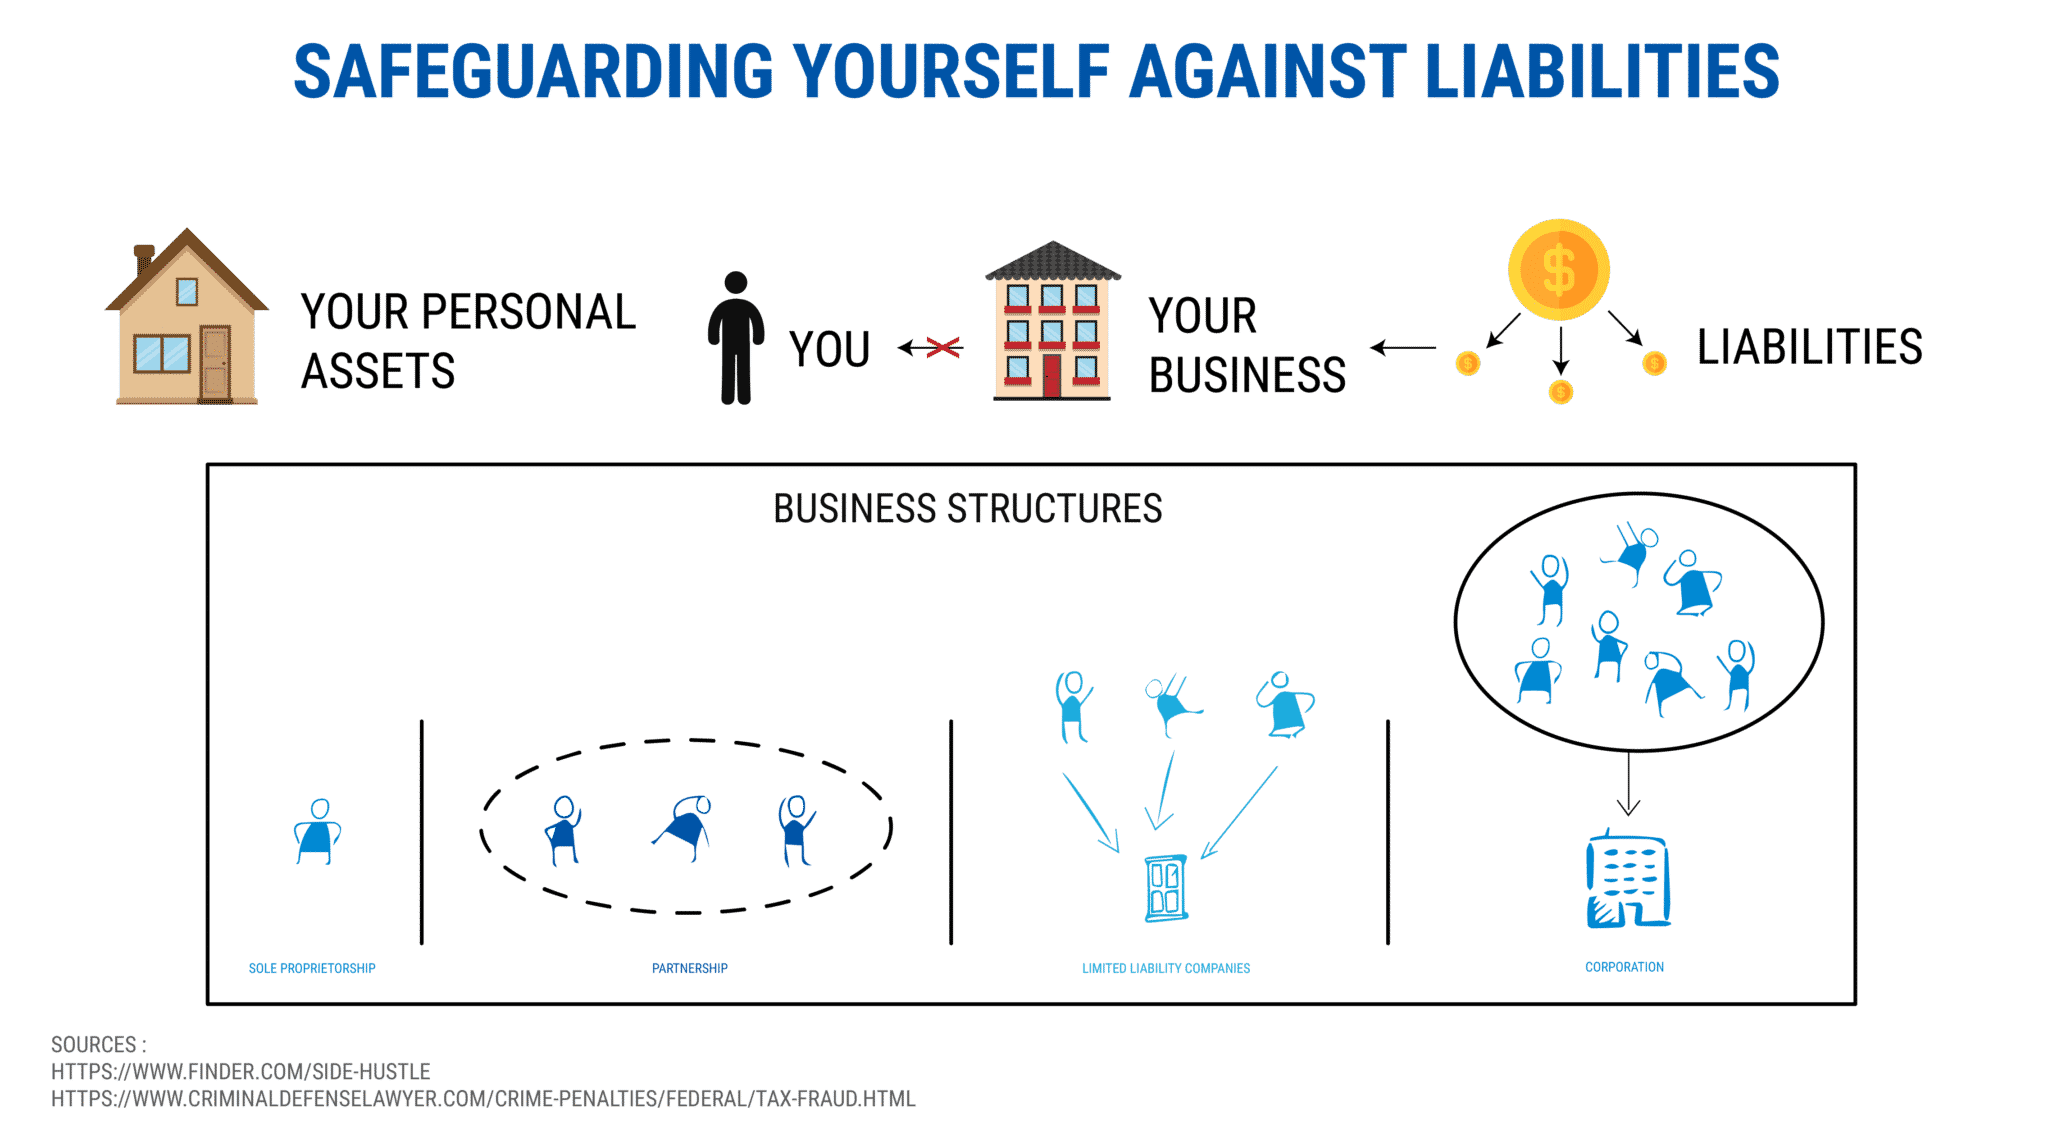 safeguarding yourself against liabilities - starting a coaching business